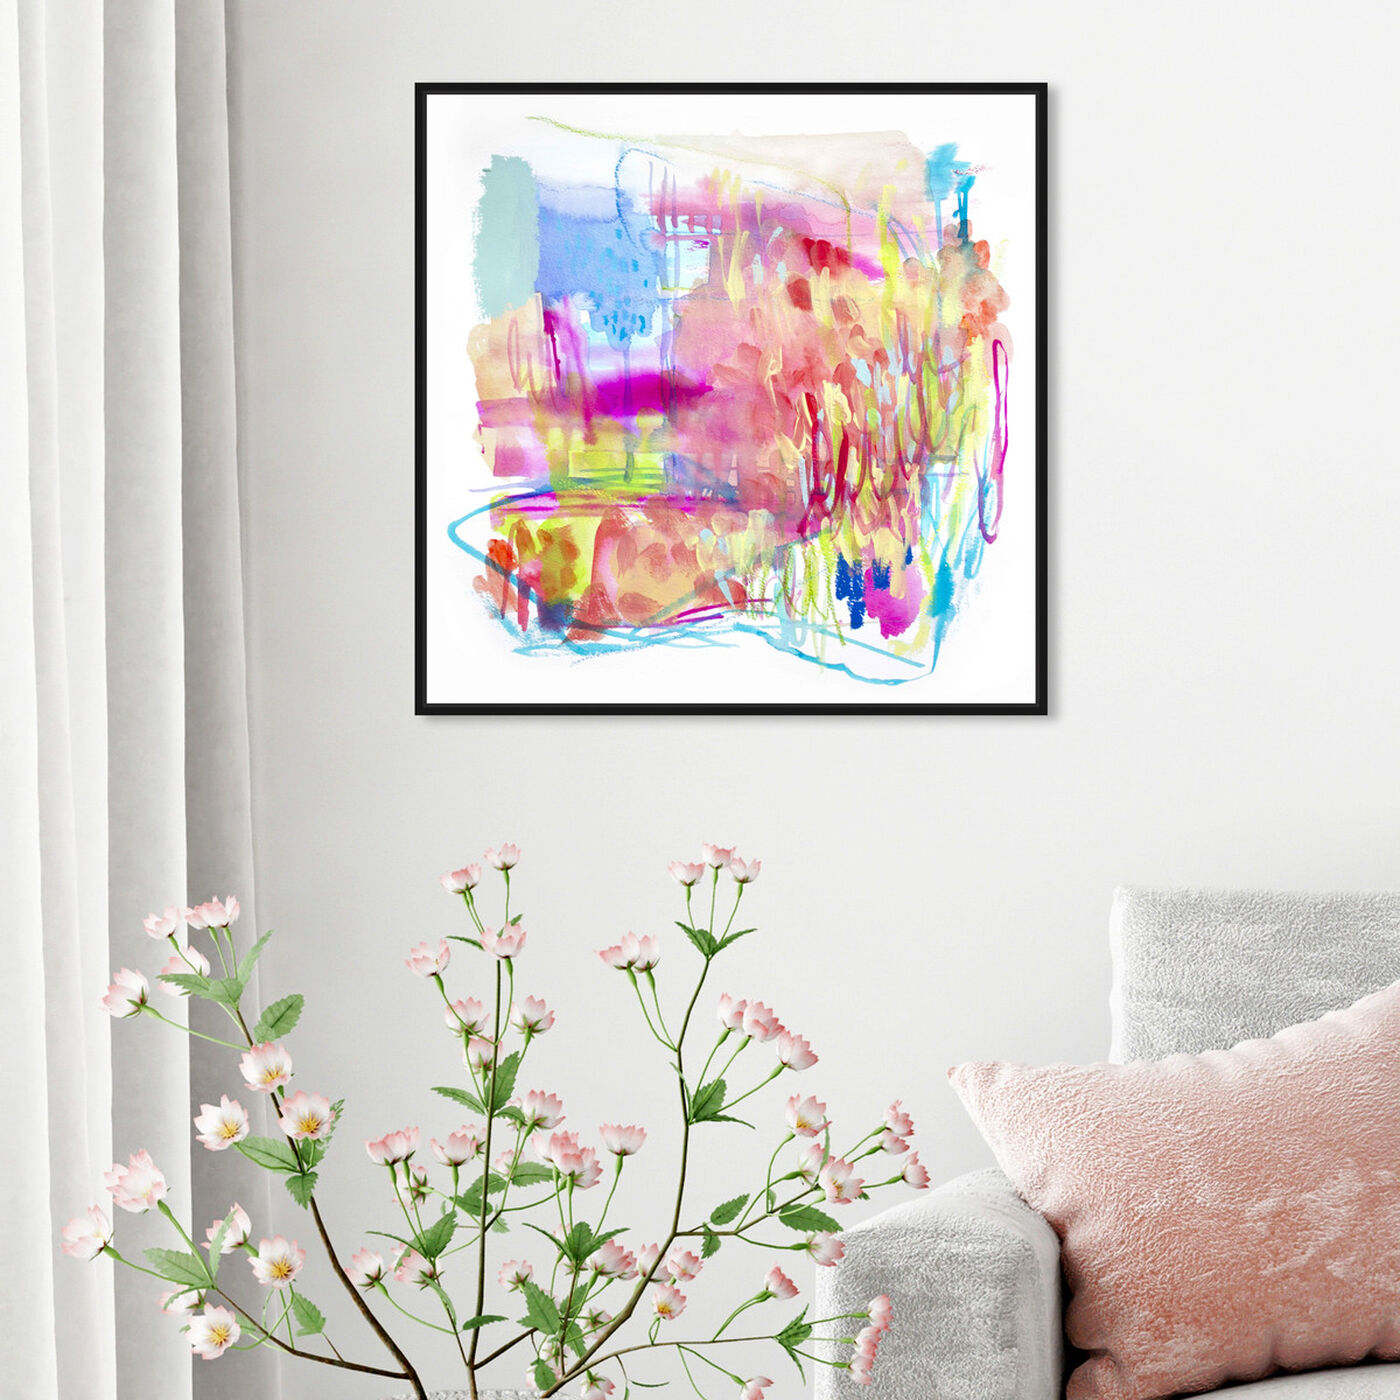 Hanging view of Fireworks at the Lake featuring abstract and watercolor art.